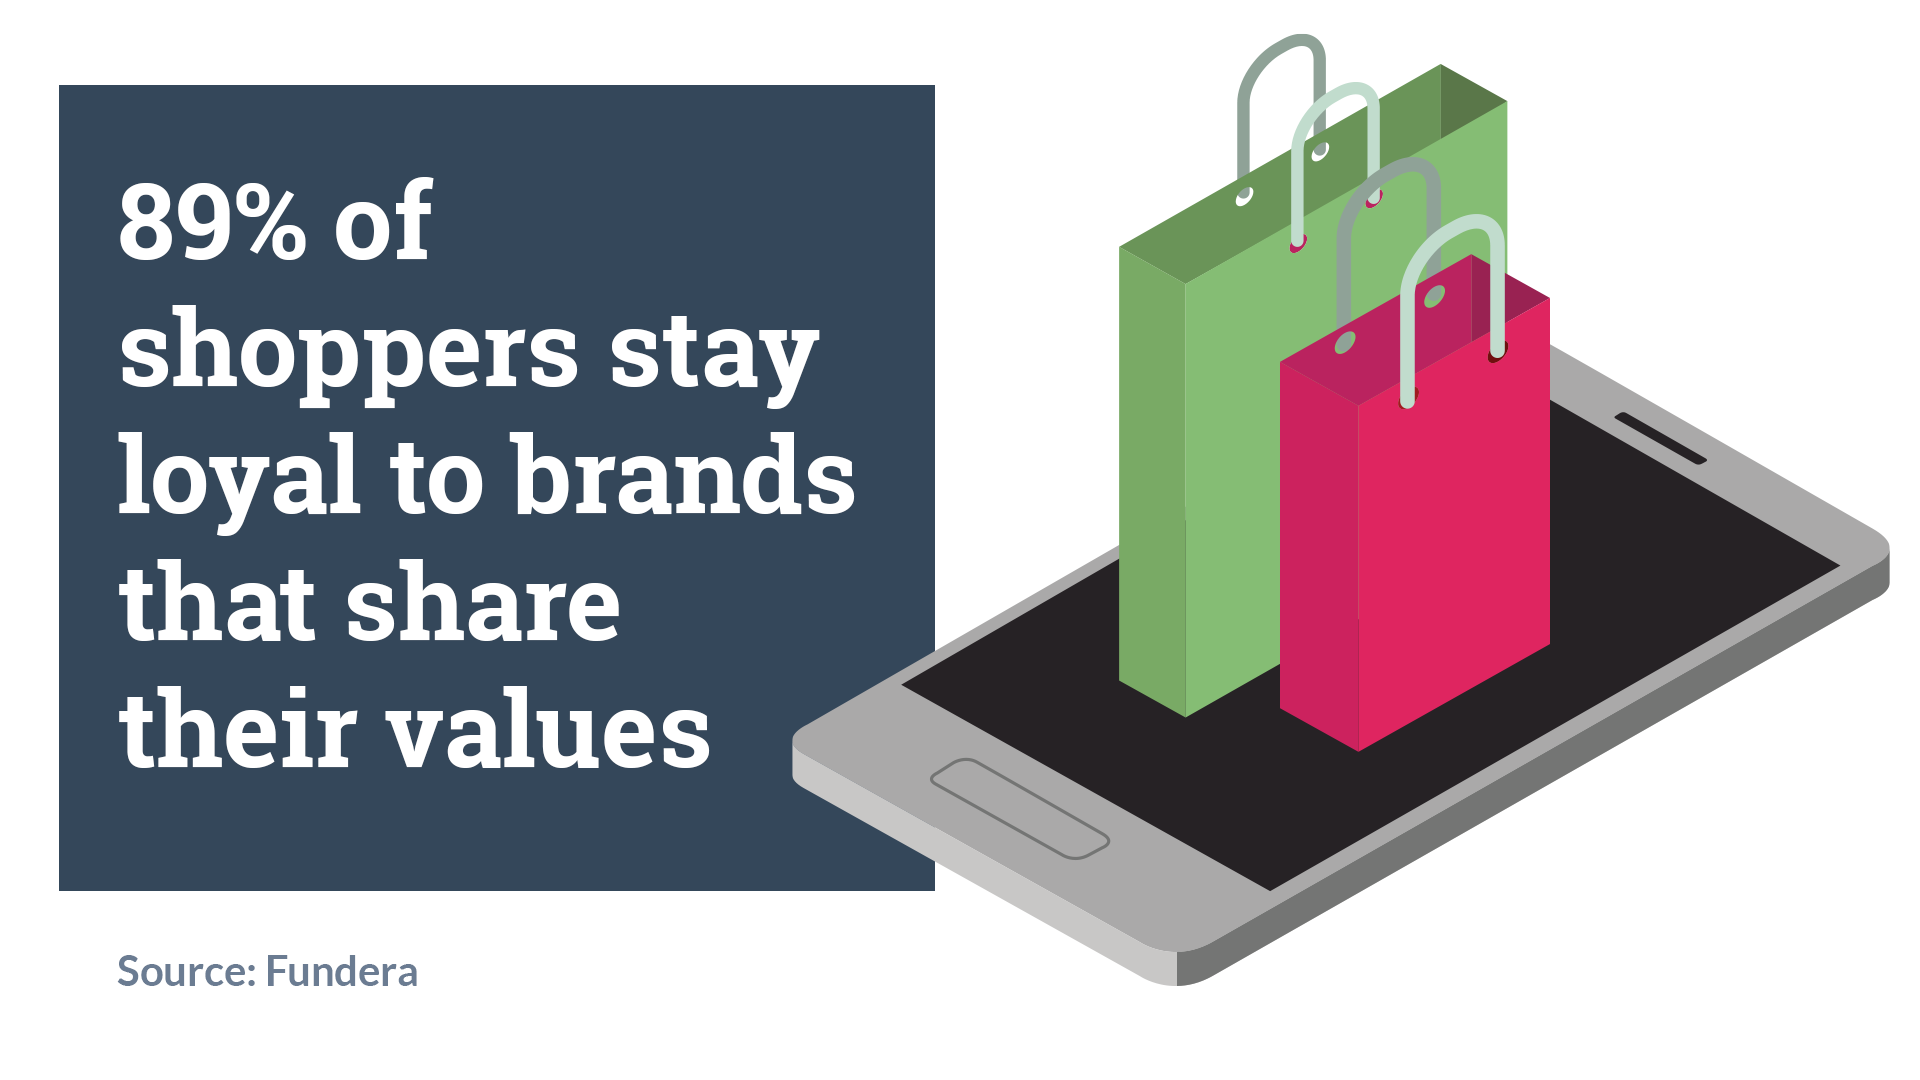 89% of shoppers stay loyal to brands that share their values